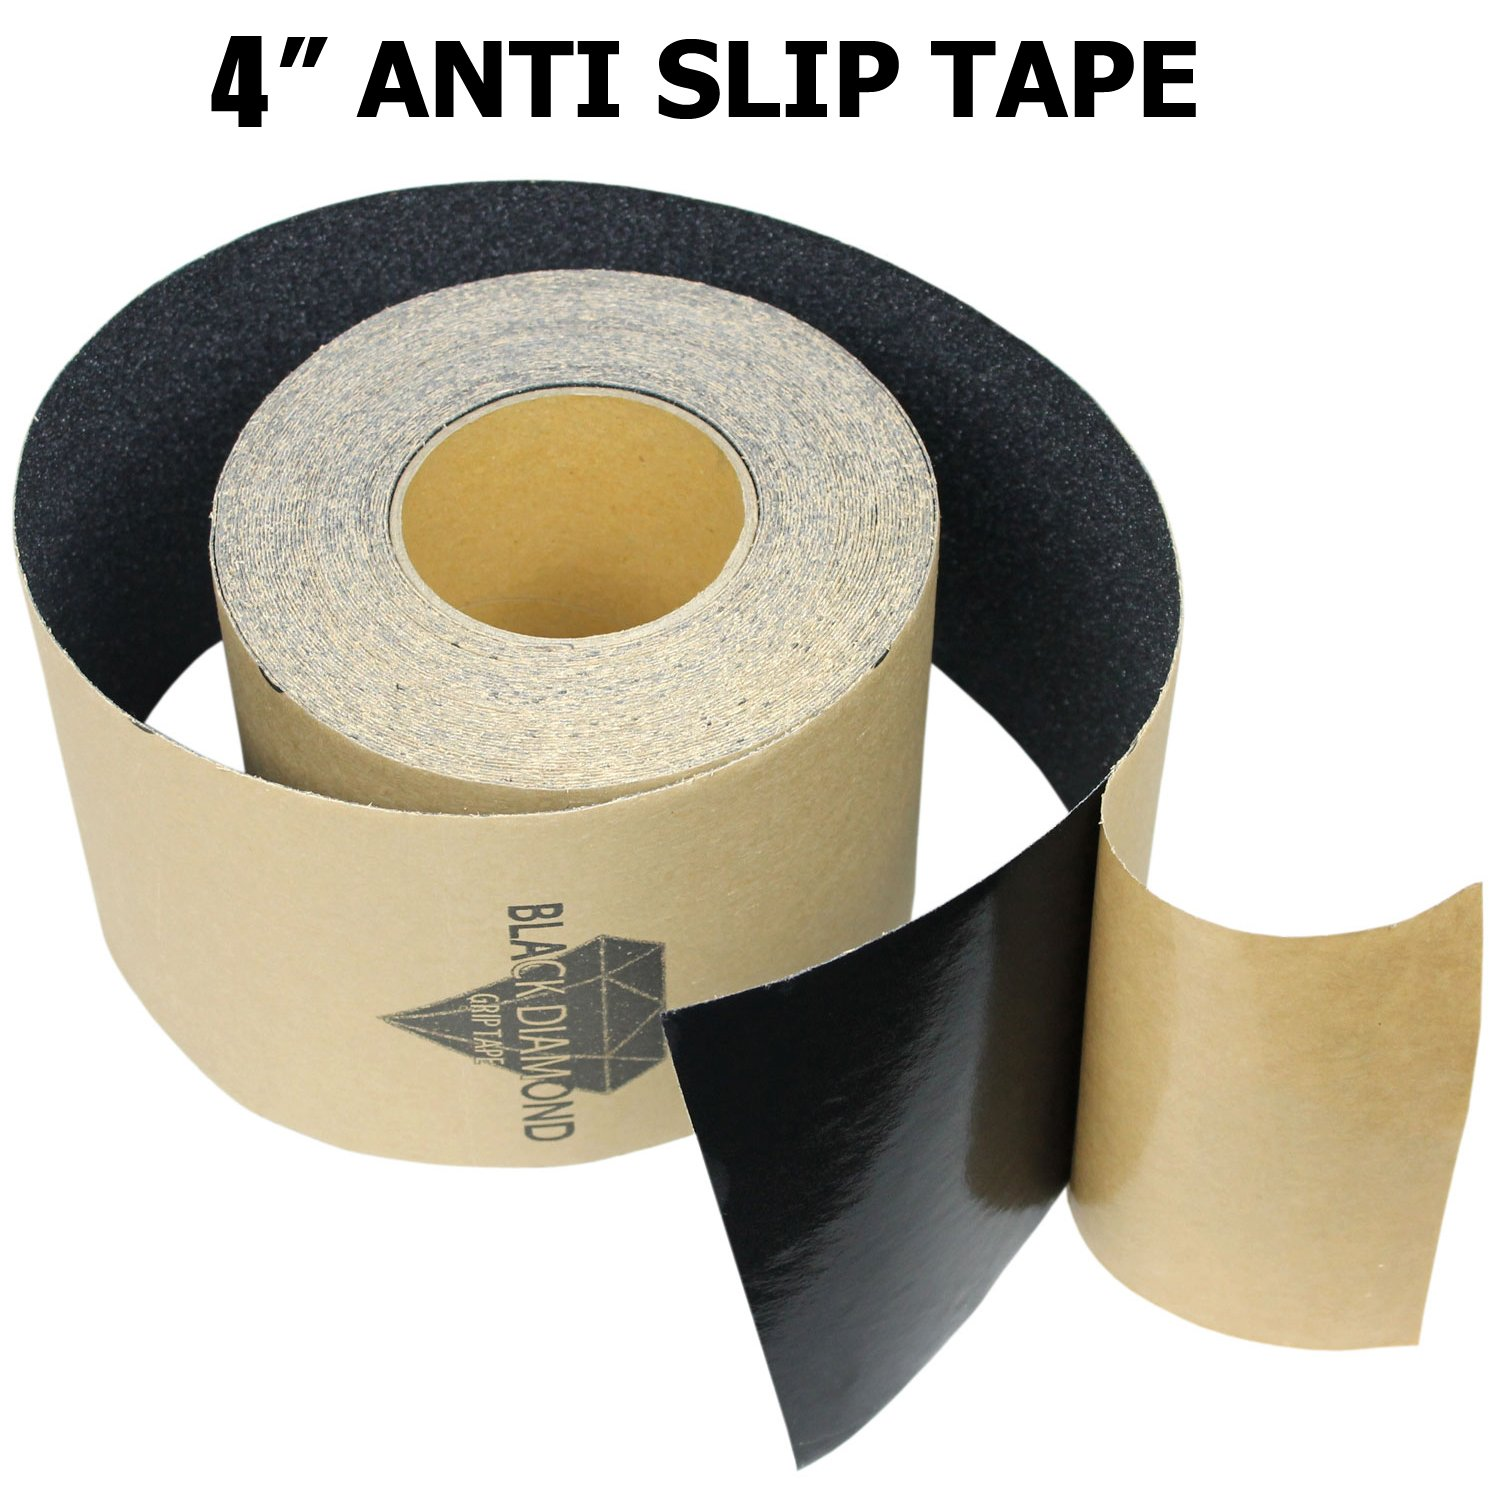 20 30 Anti Slip Traction Tape Black Yellow Roll Safety Non Skid Self Adhesive Silicon Carbide Sticky Grip Safe Grit 4 x 10